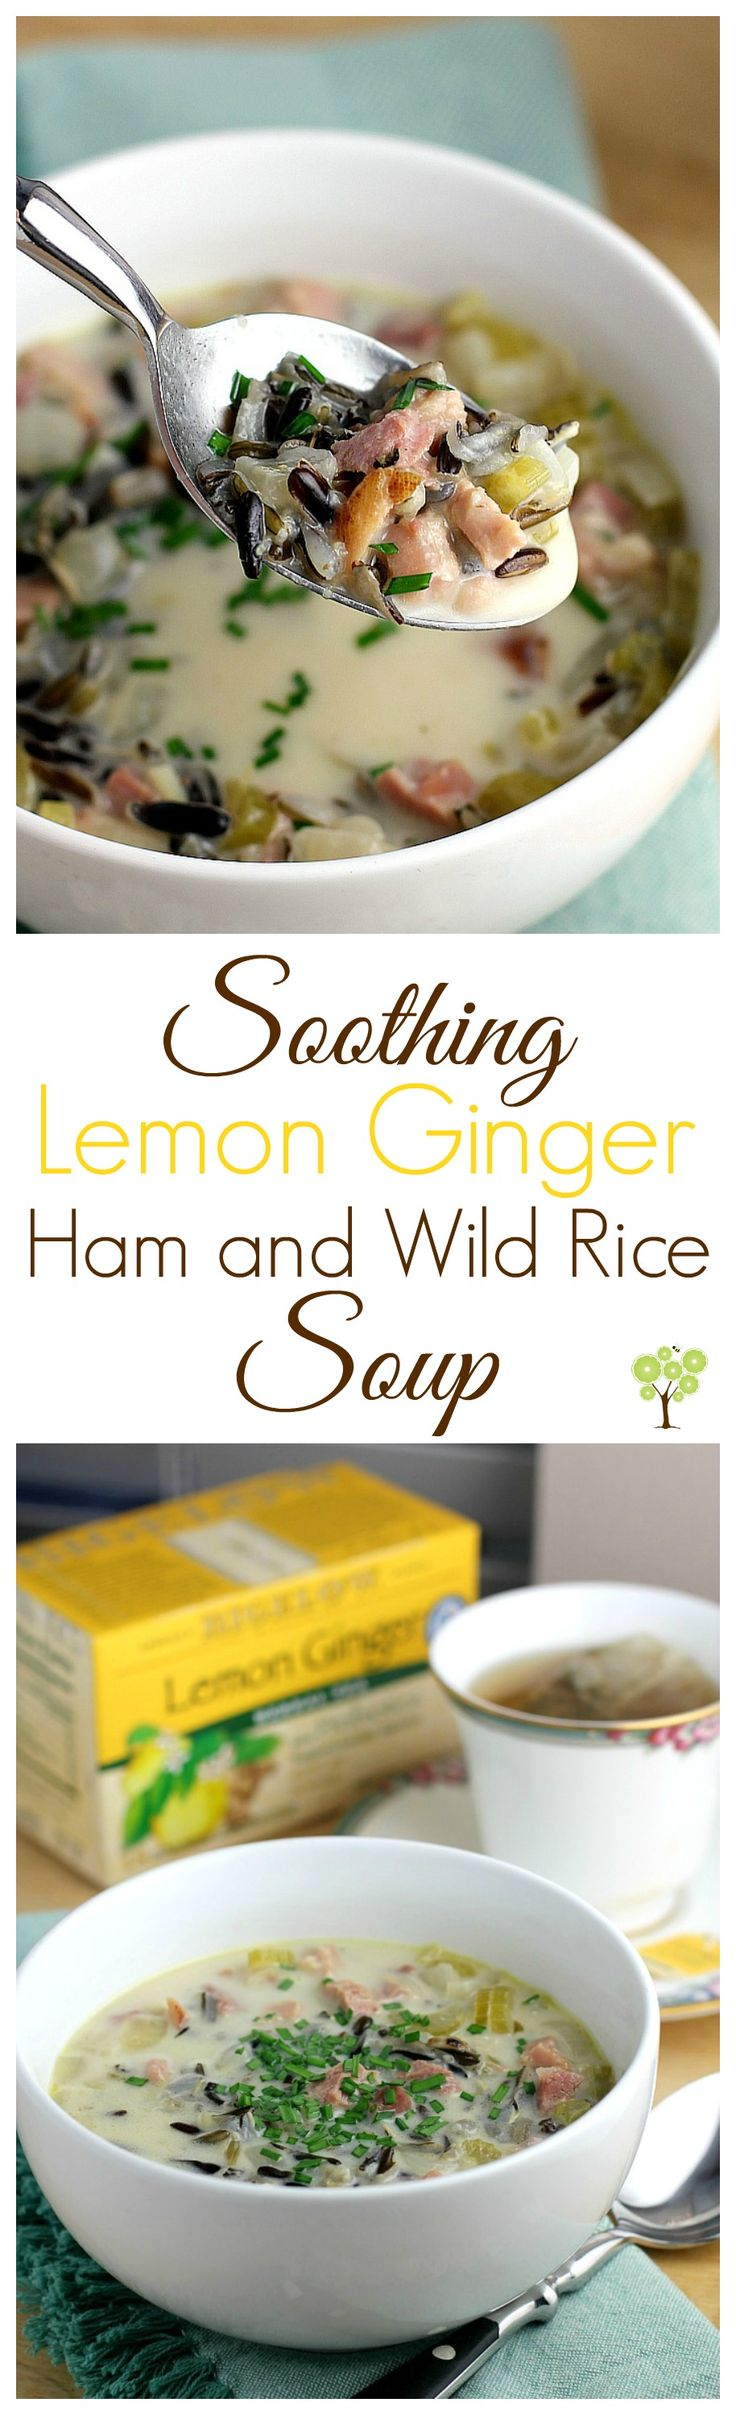 Soothing Lemon Ginger Ham and Wild Rice Soup from EricasRecipes.com #MeAndMyTea #ad @BigelowTea